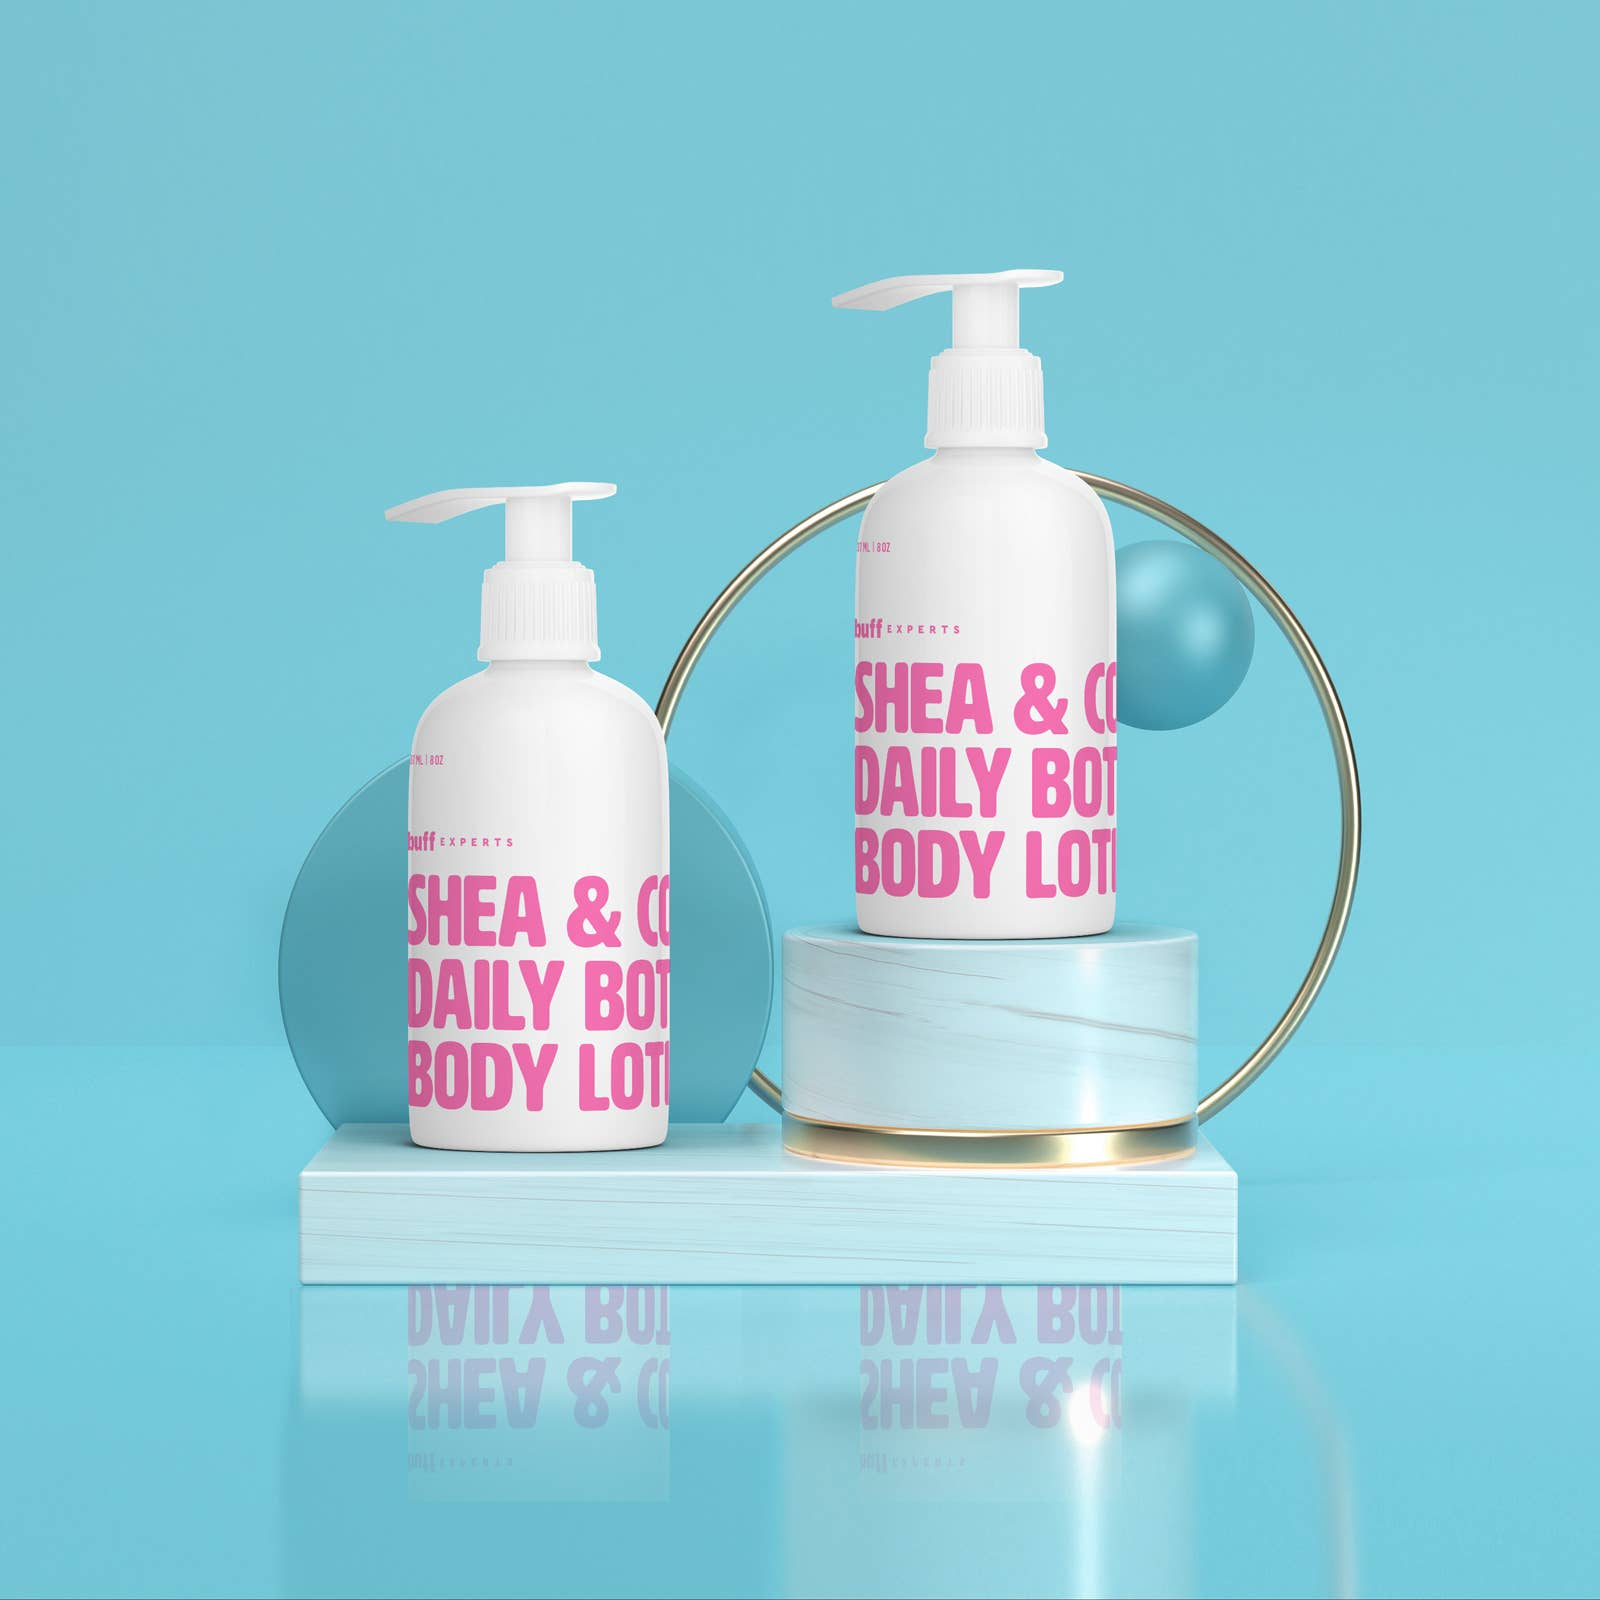 Shea & Cocoa Daily Botanical Body Lotion